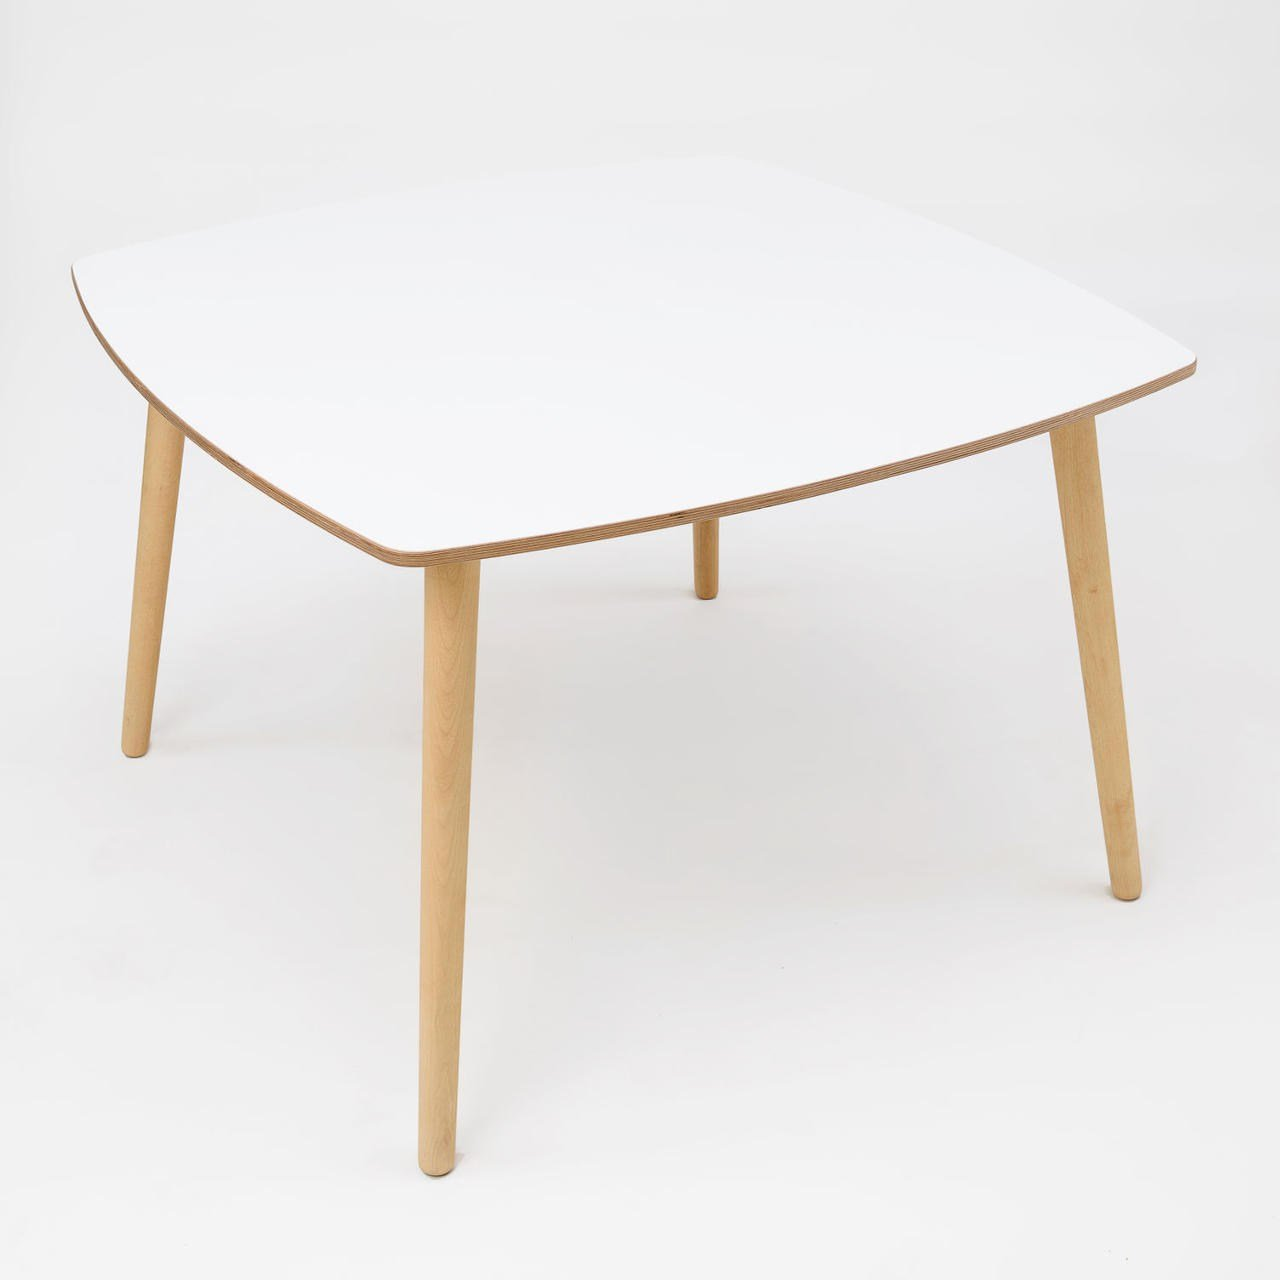 Nam nam table extensible by radis design raul abner for Table 90x120